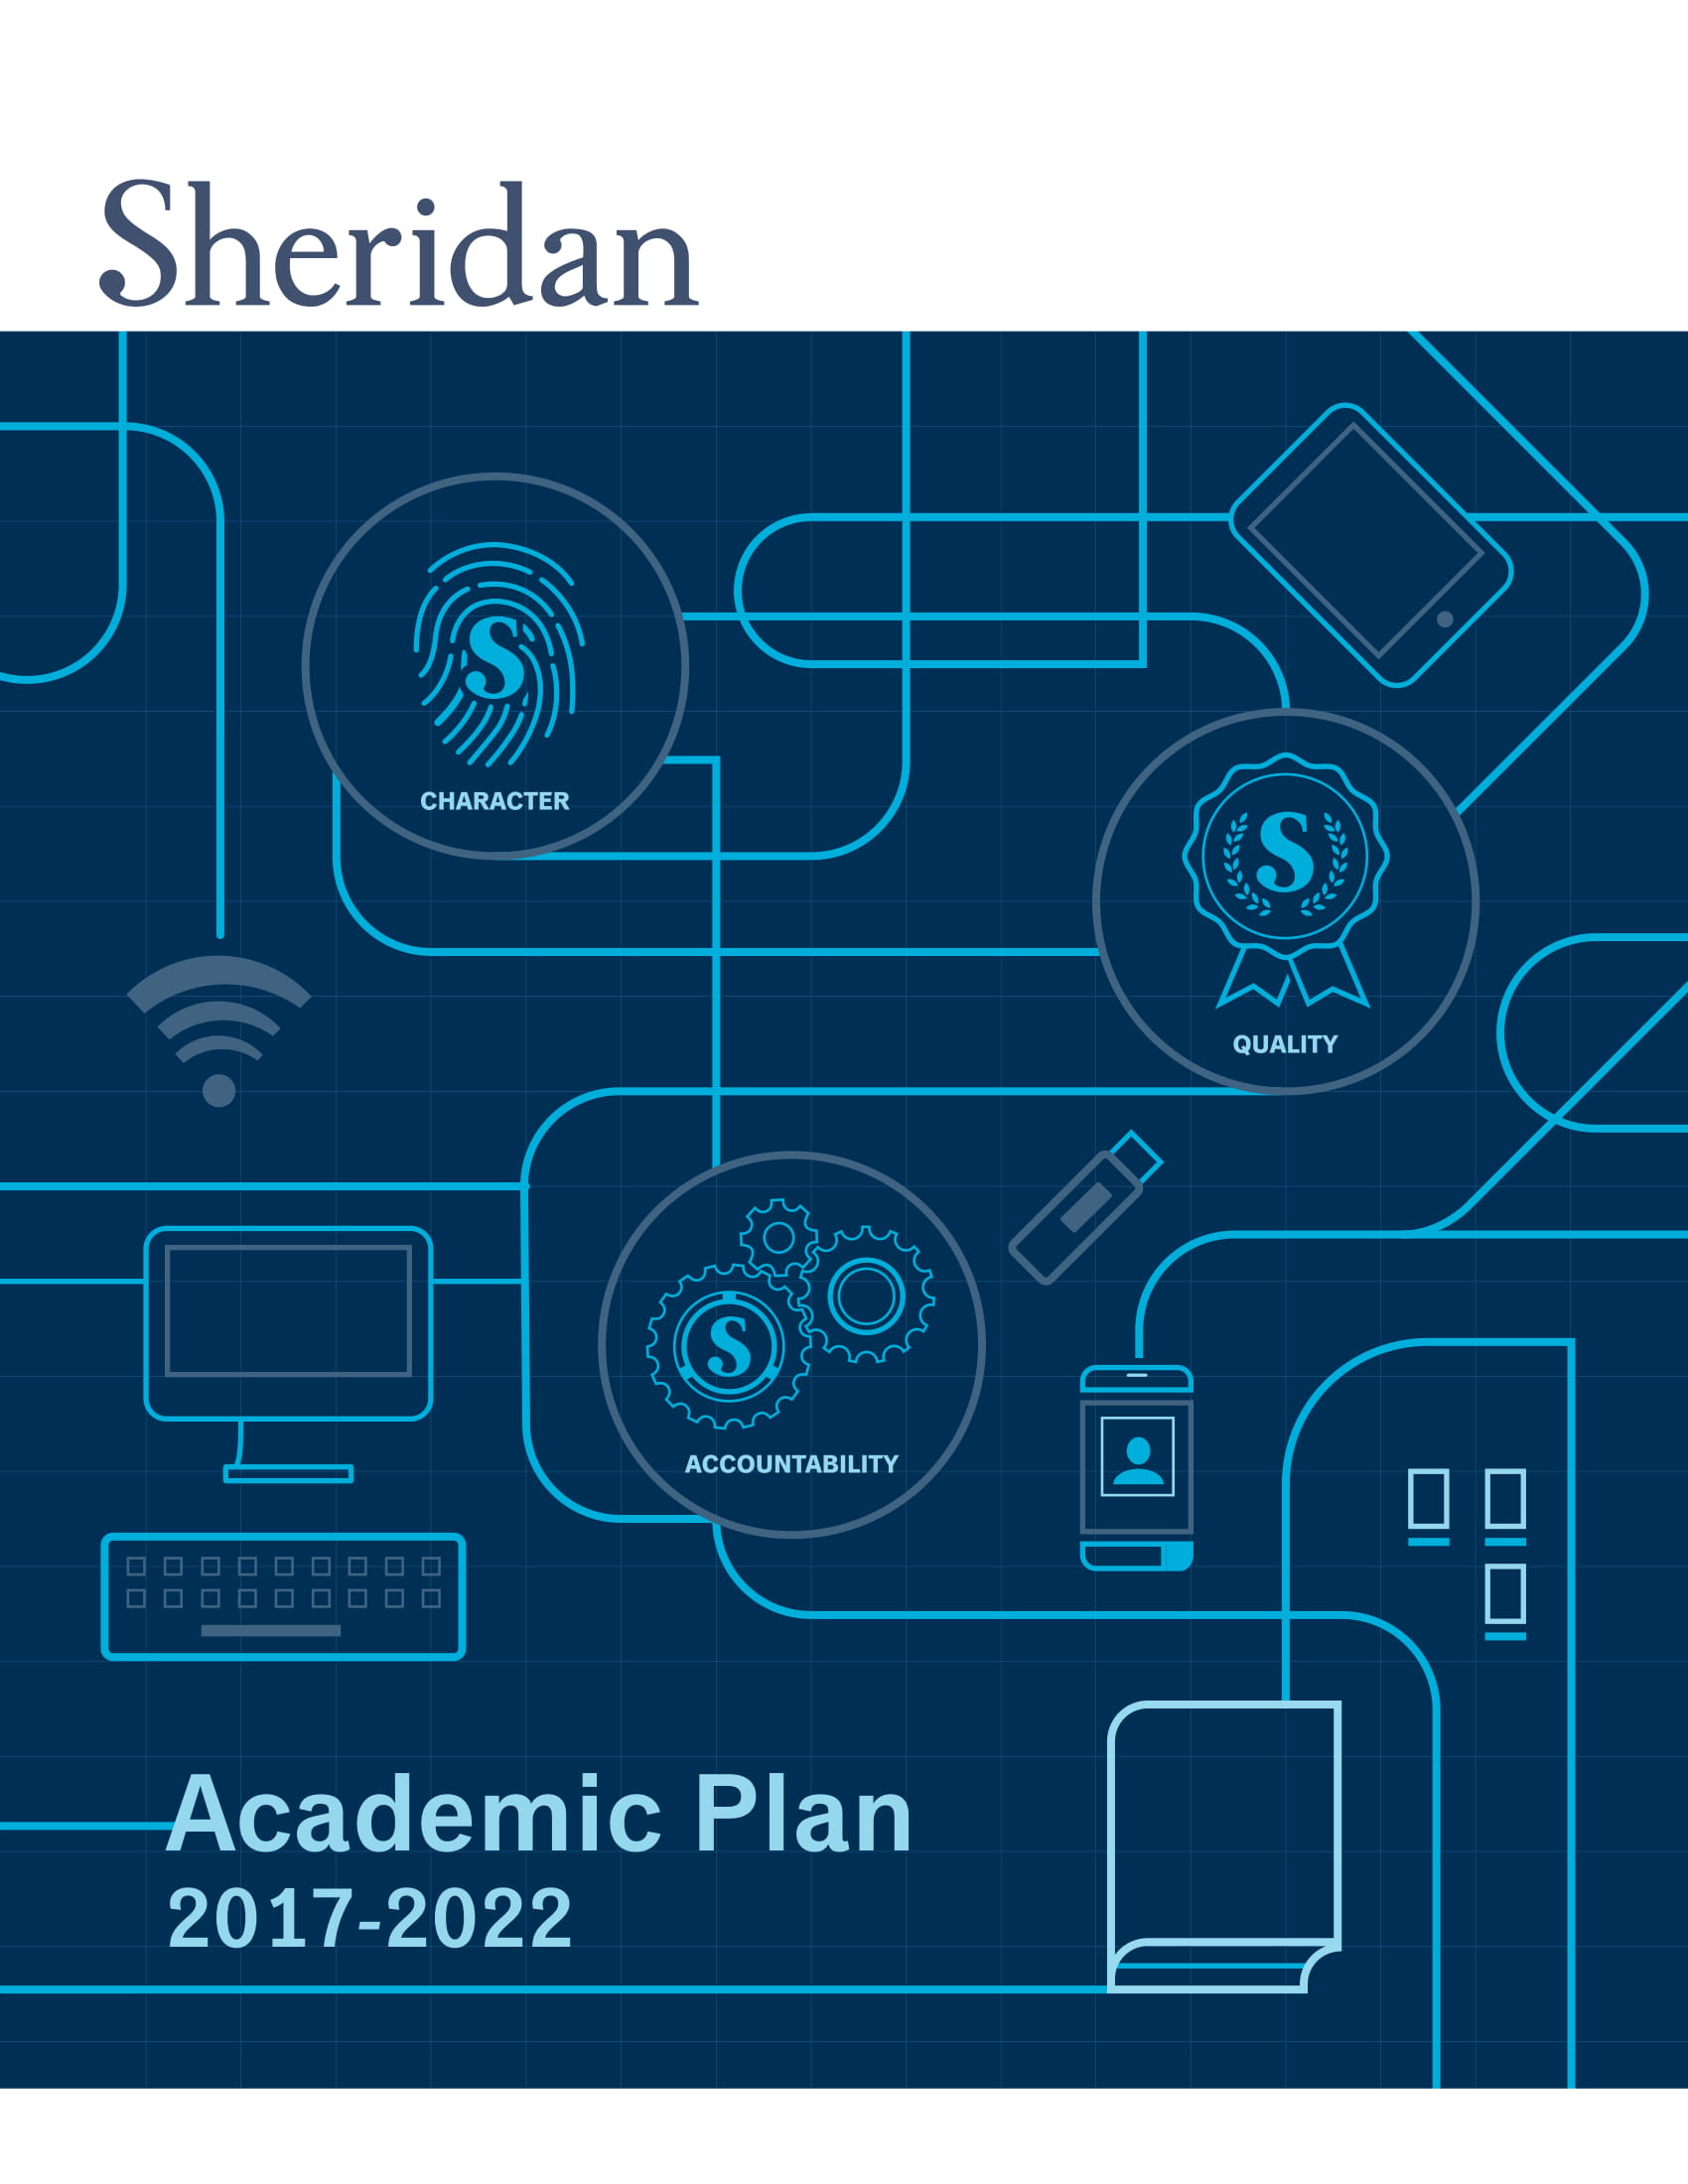 academic strategic plan 2017